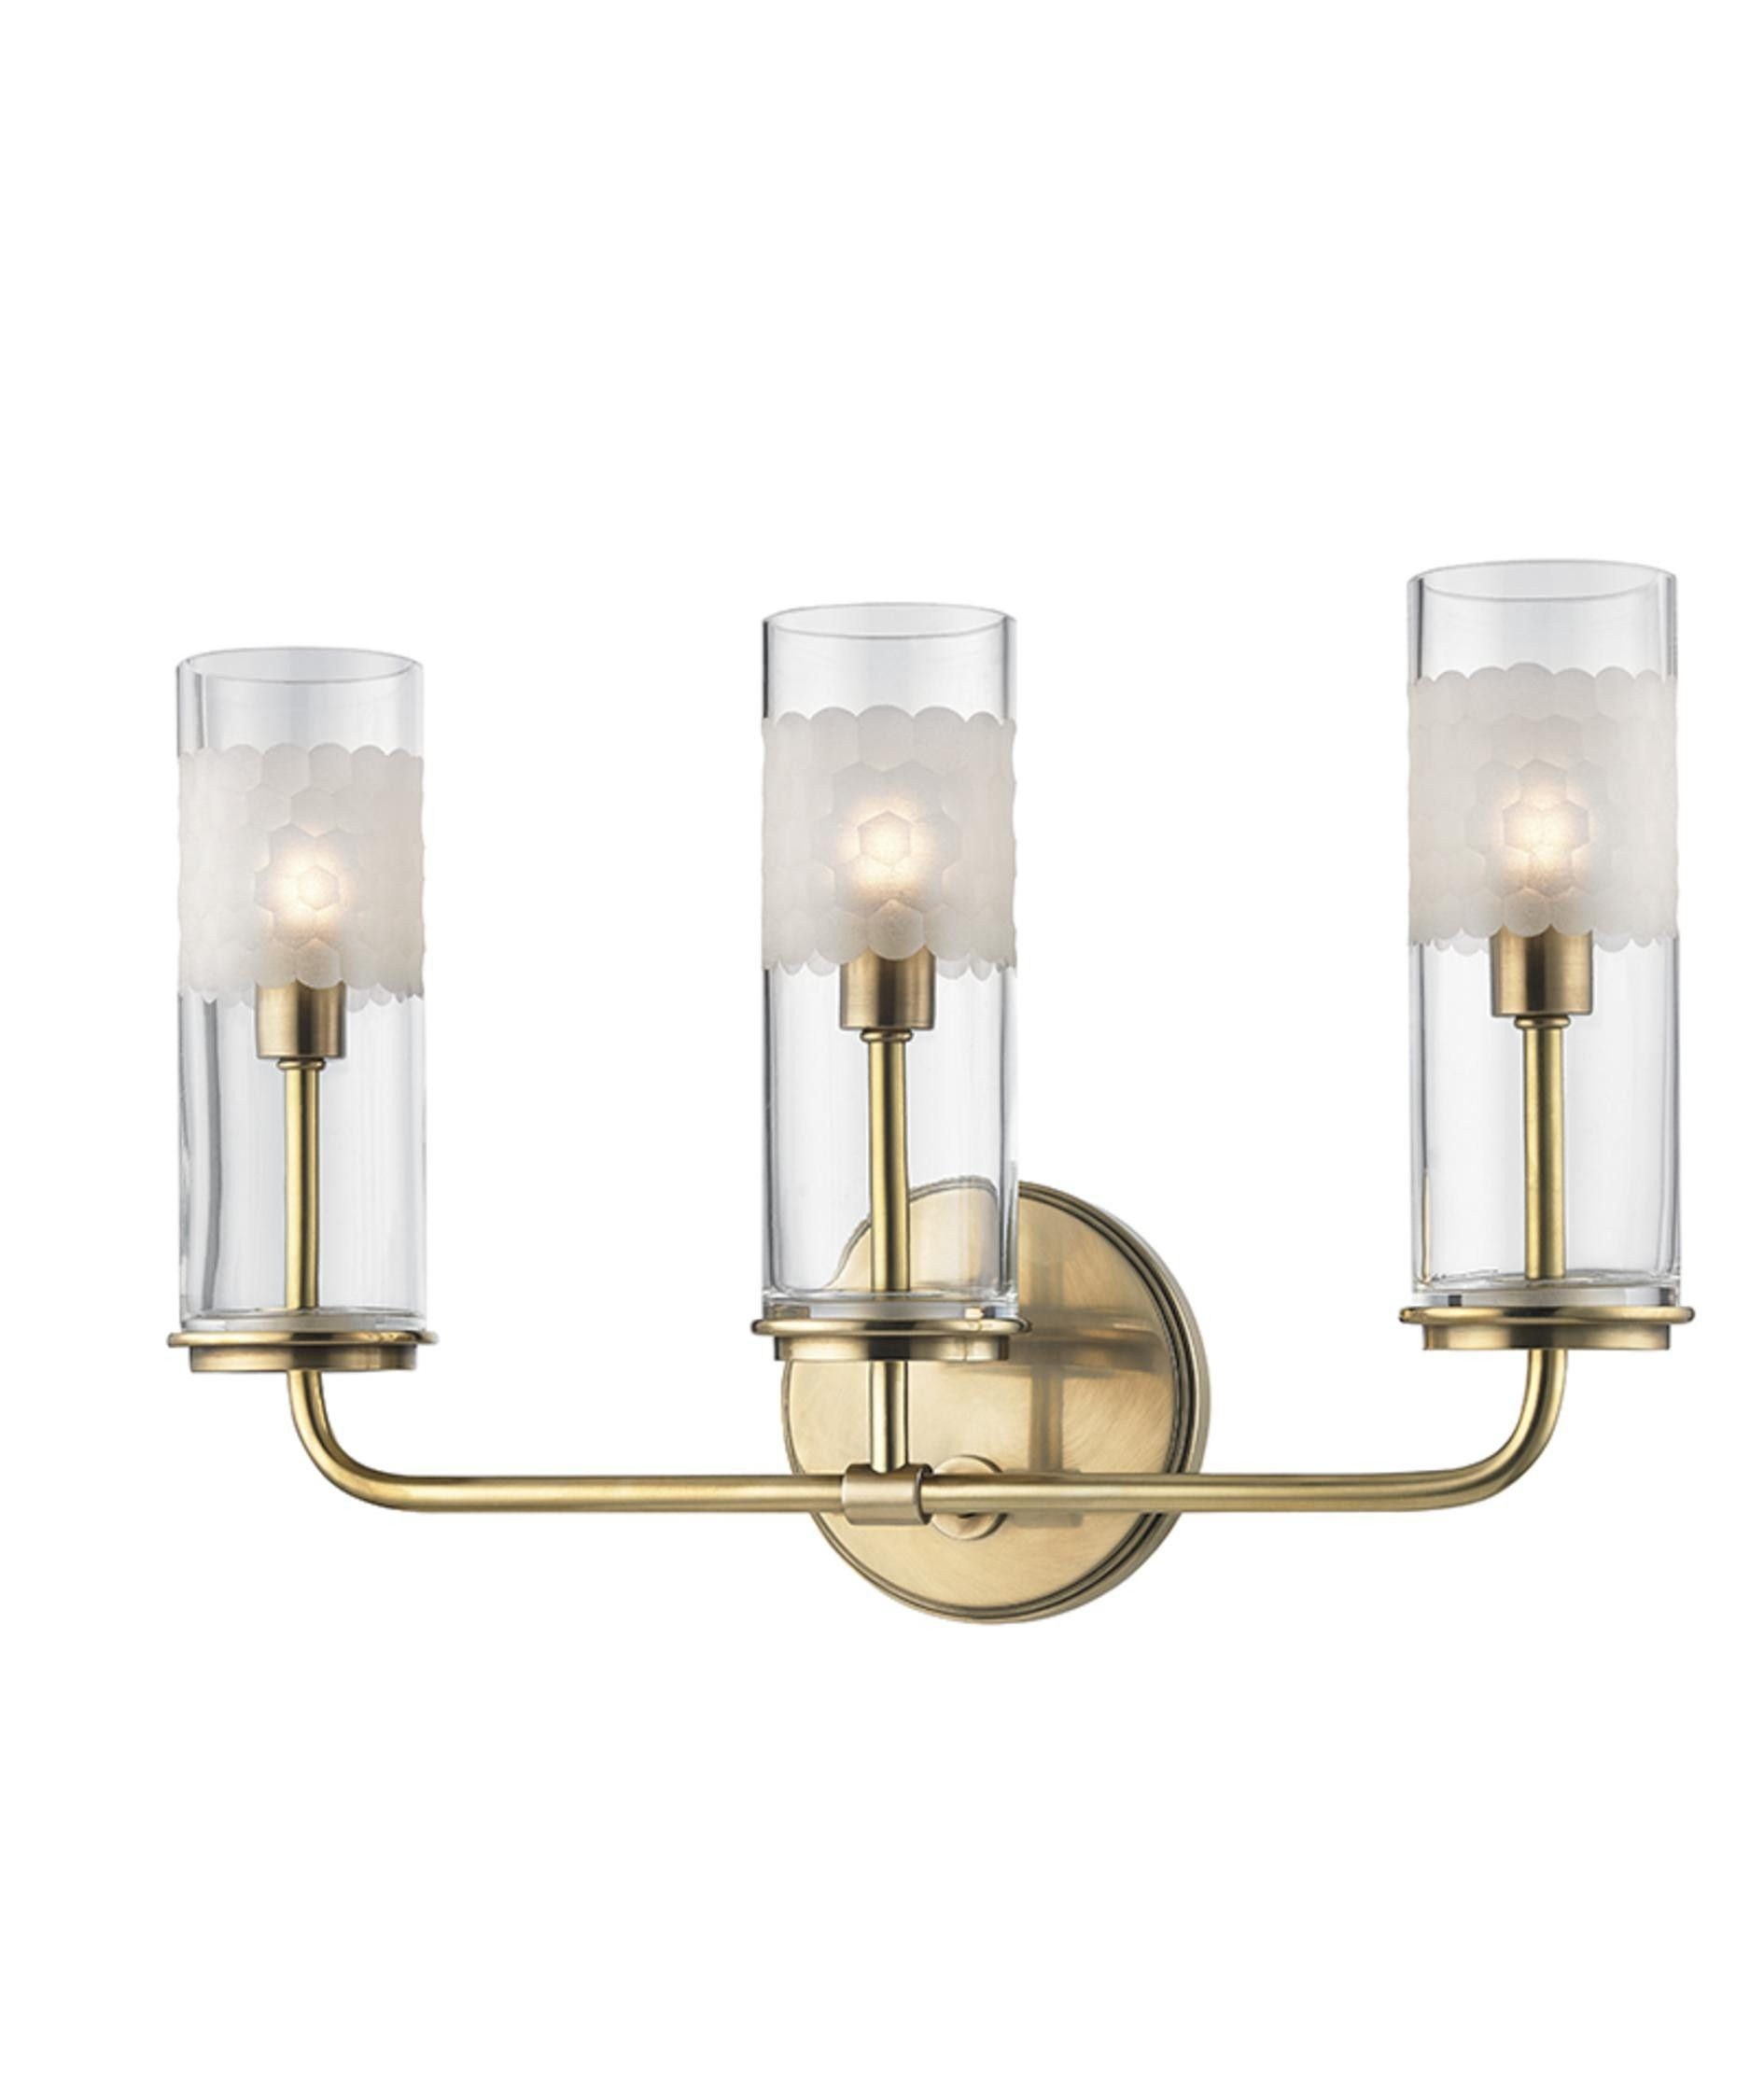 Lighting Bathroom Sconce Modern Sconce Hanging Chandeliers - Antique brass bathroom light fixtures for bathroom decor ideas